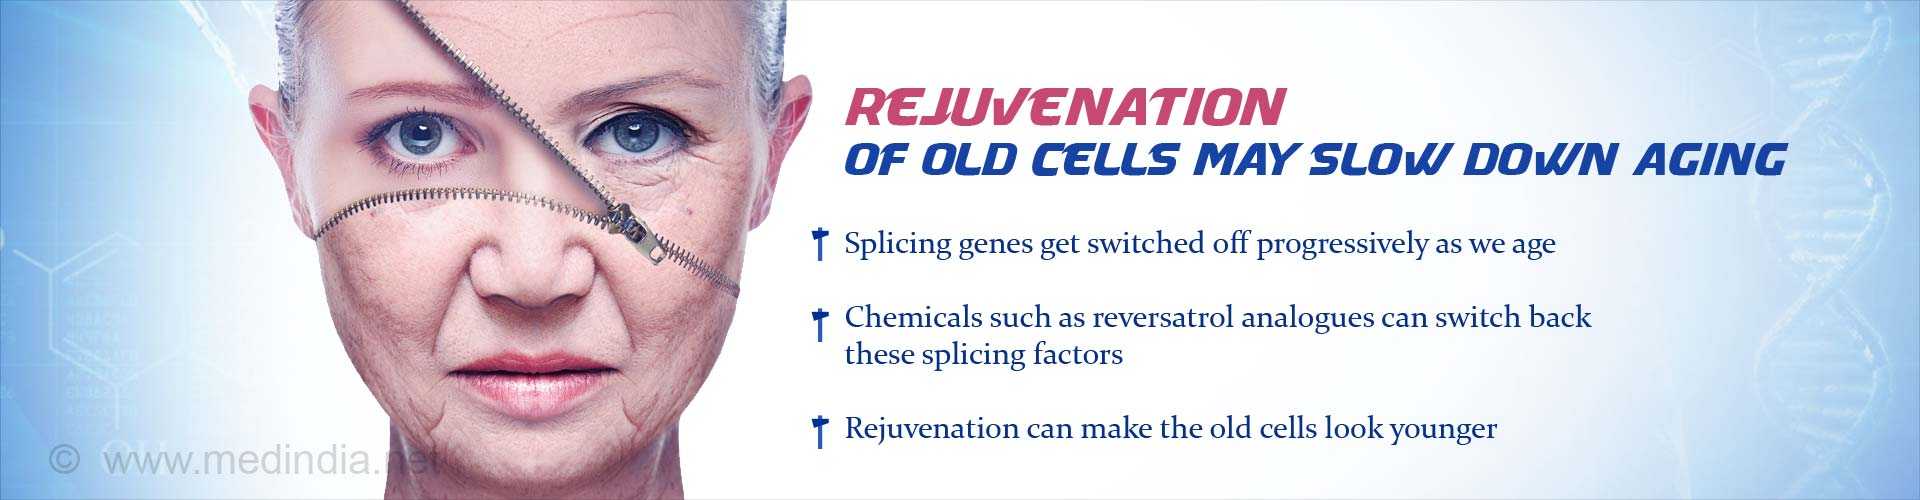 rejuvenation of old cells may slow down aging